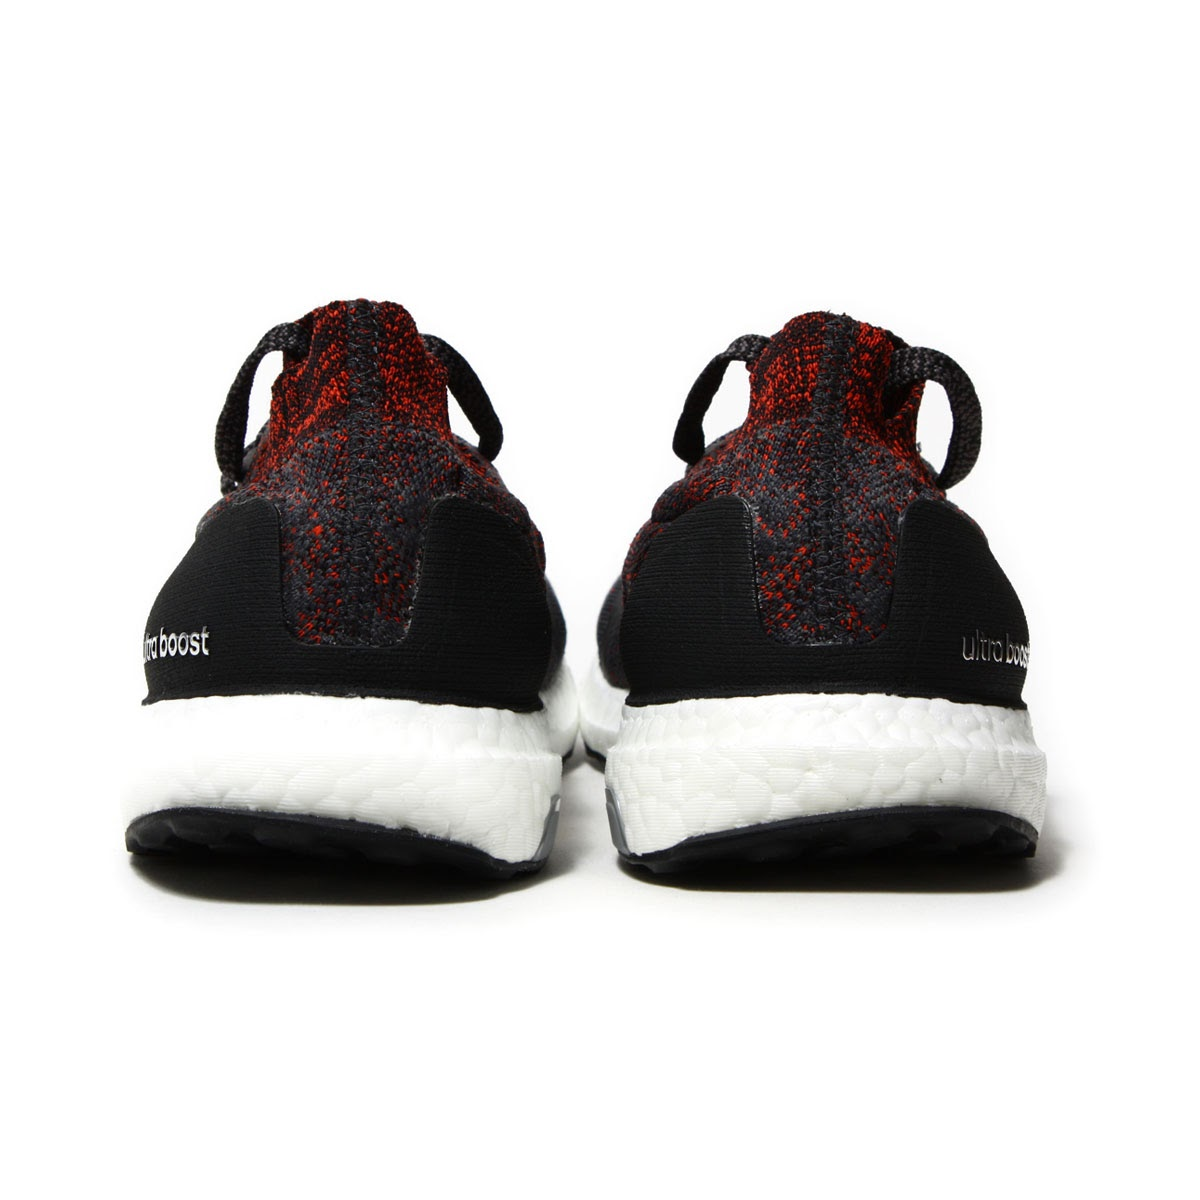 3f5f94f4239 adidas Originals UltraBOOST Uncaged (Adidas originals ultra boost Ann  caged) Carbon Core Black Running White 18SS-I